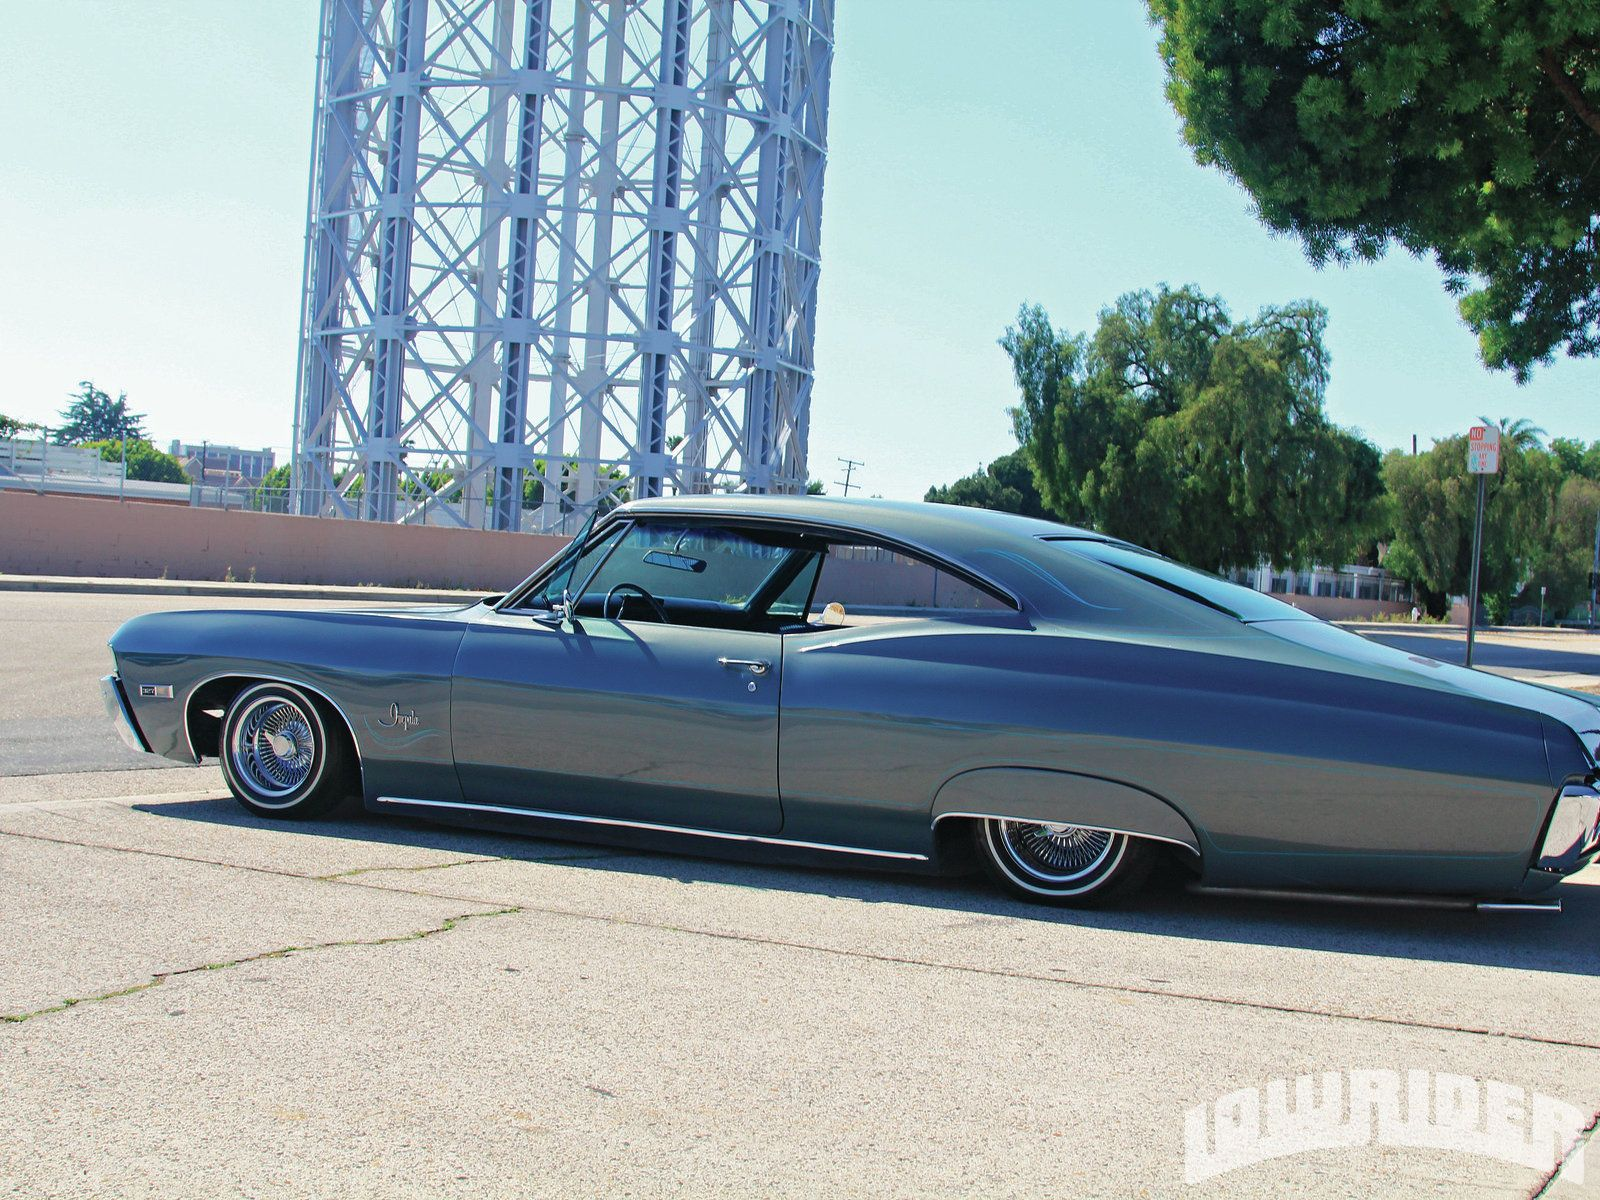 Http Image Lowridermagazine Com F Features 1109 Lrmp On The Blvd 37412547 1109 Lrmp 24 O 2bon The Blvd 2b1968 Chevy Impa Lowriders Lowrider Cars Chevy Impala